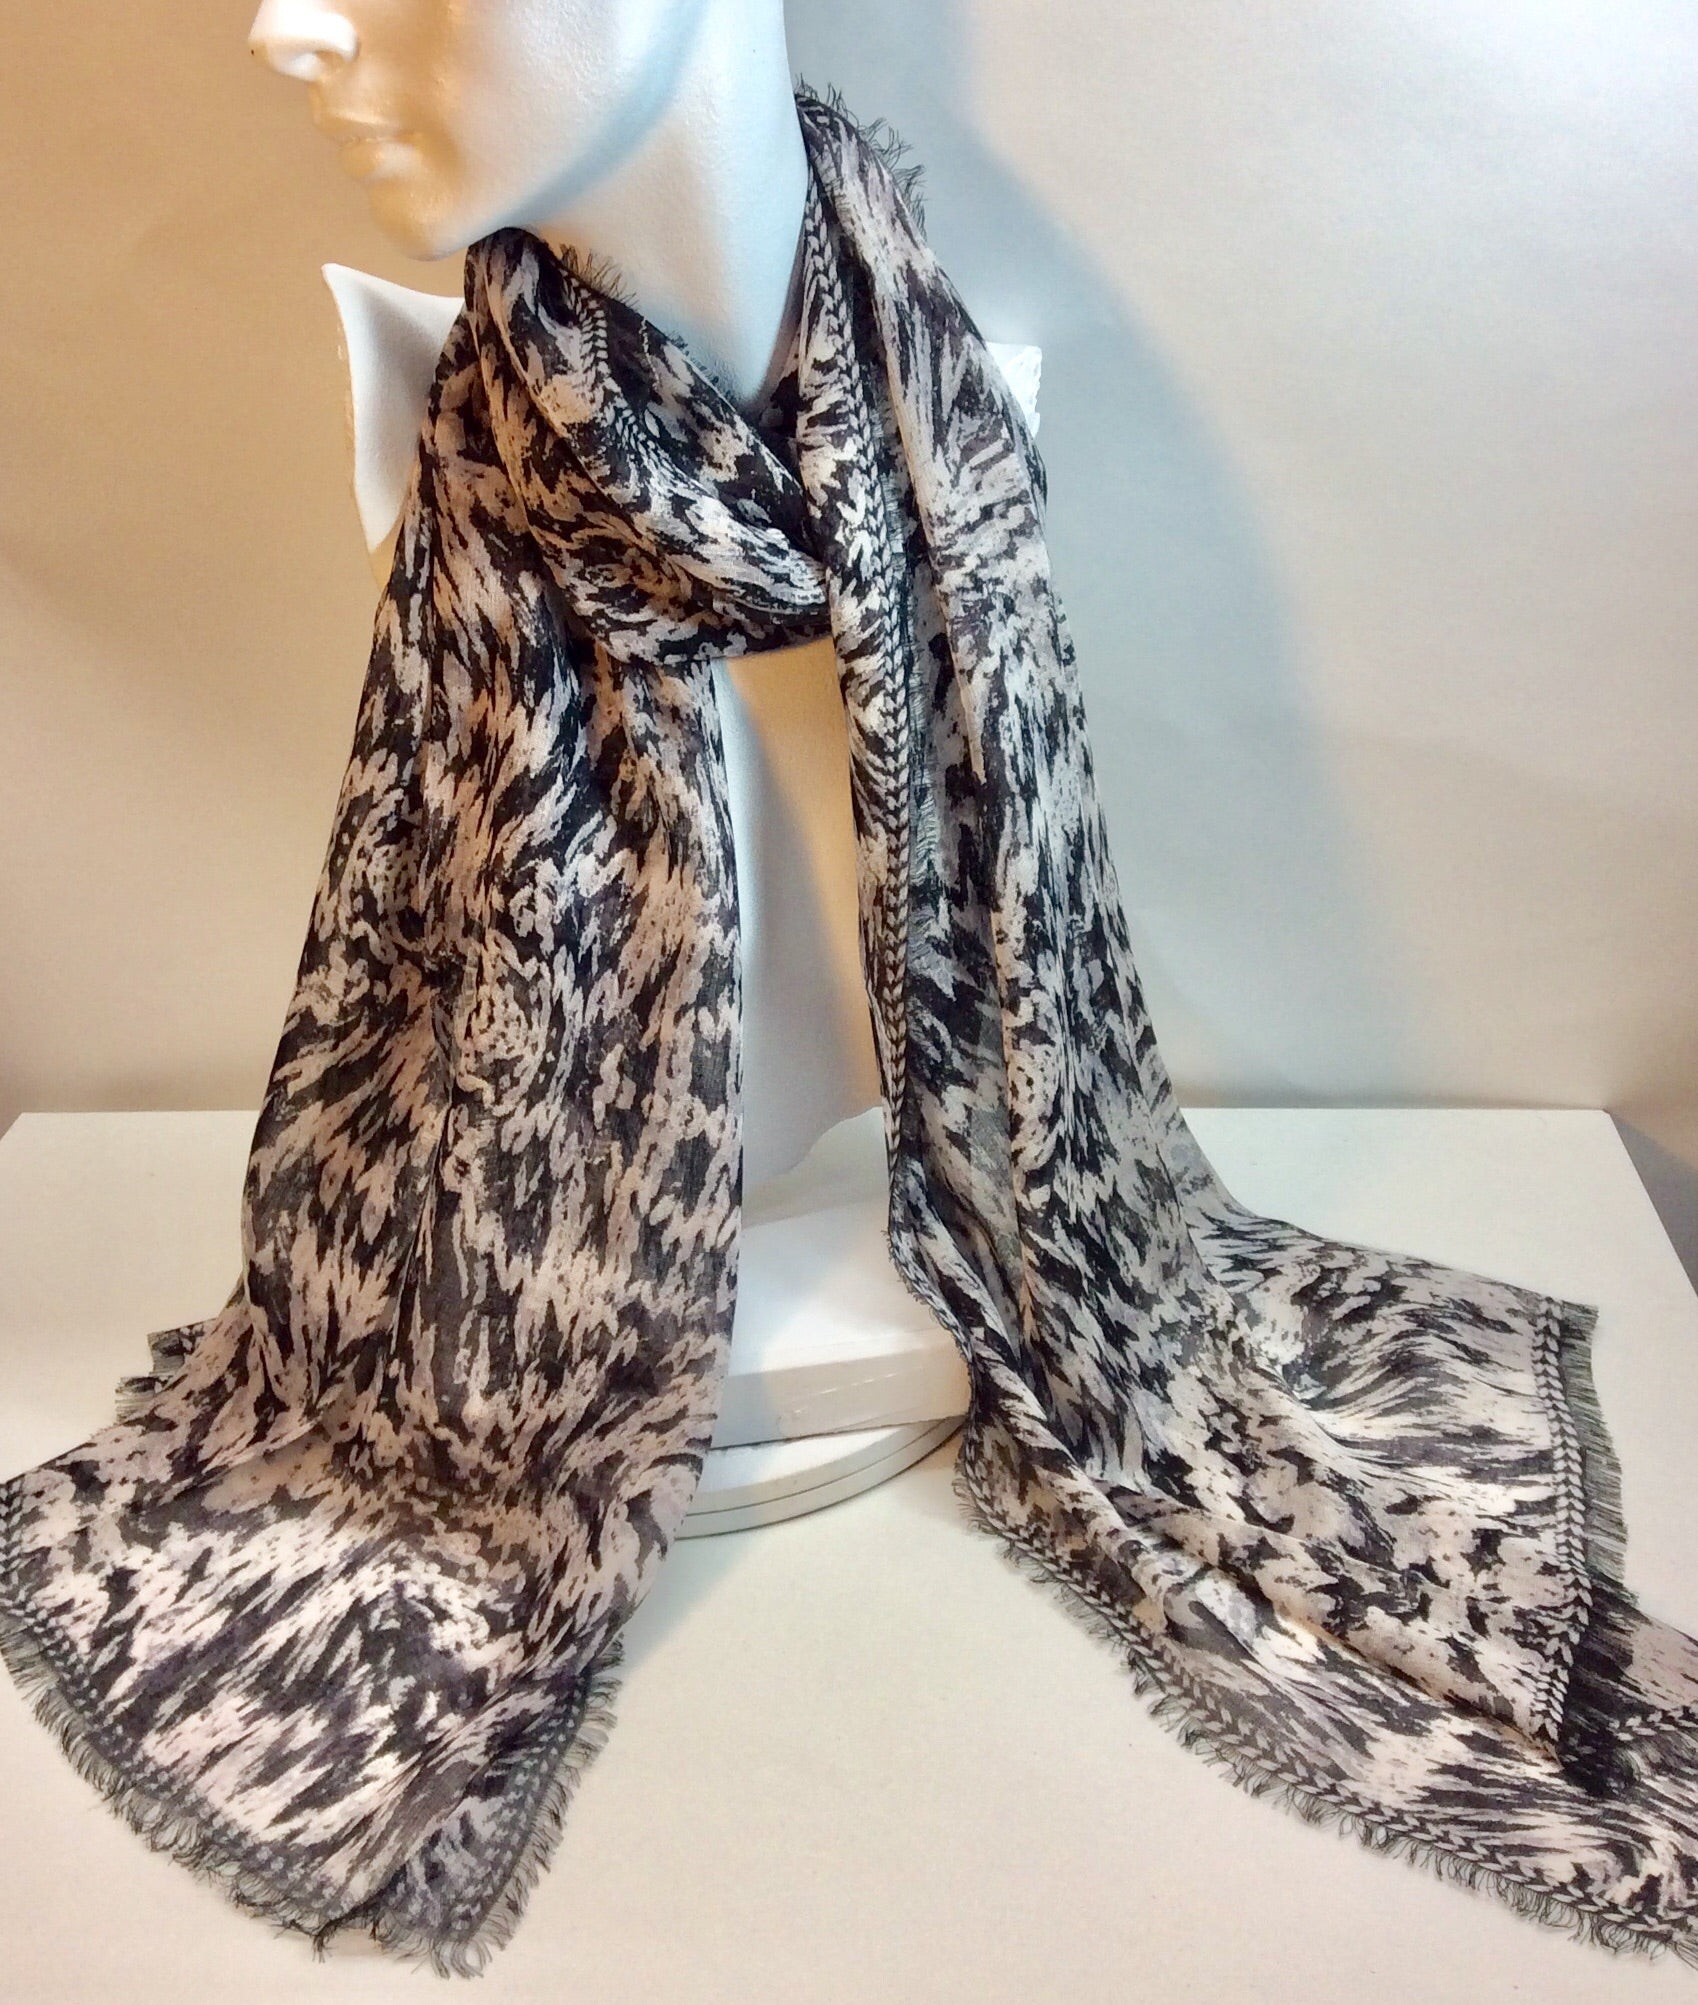 Black and white model scarf with fringe